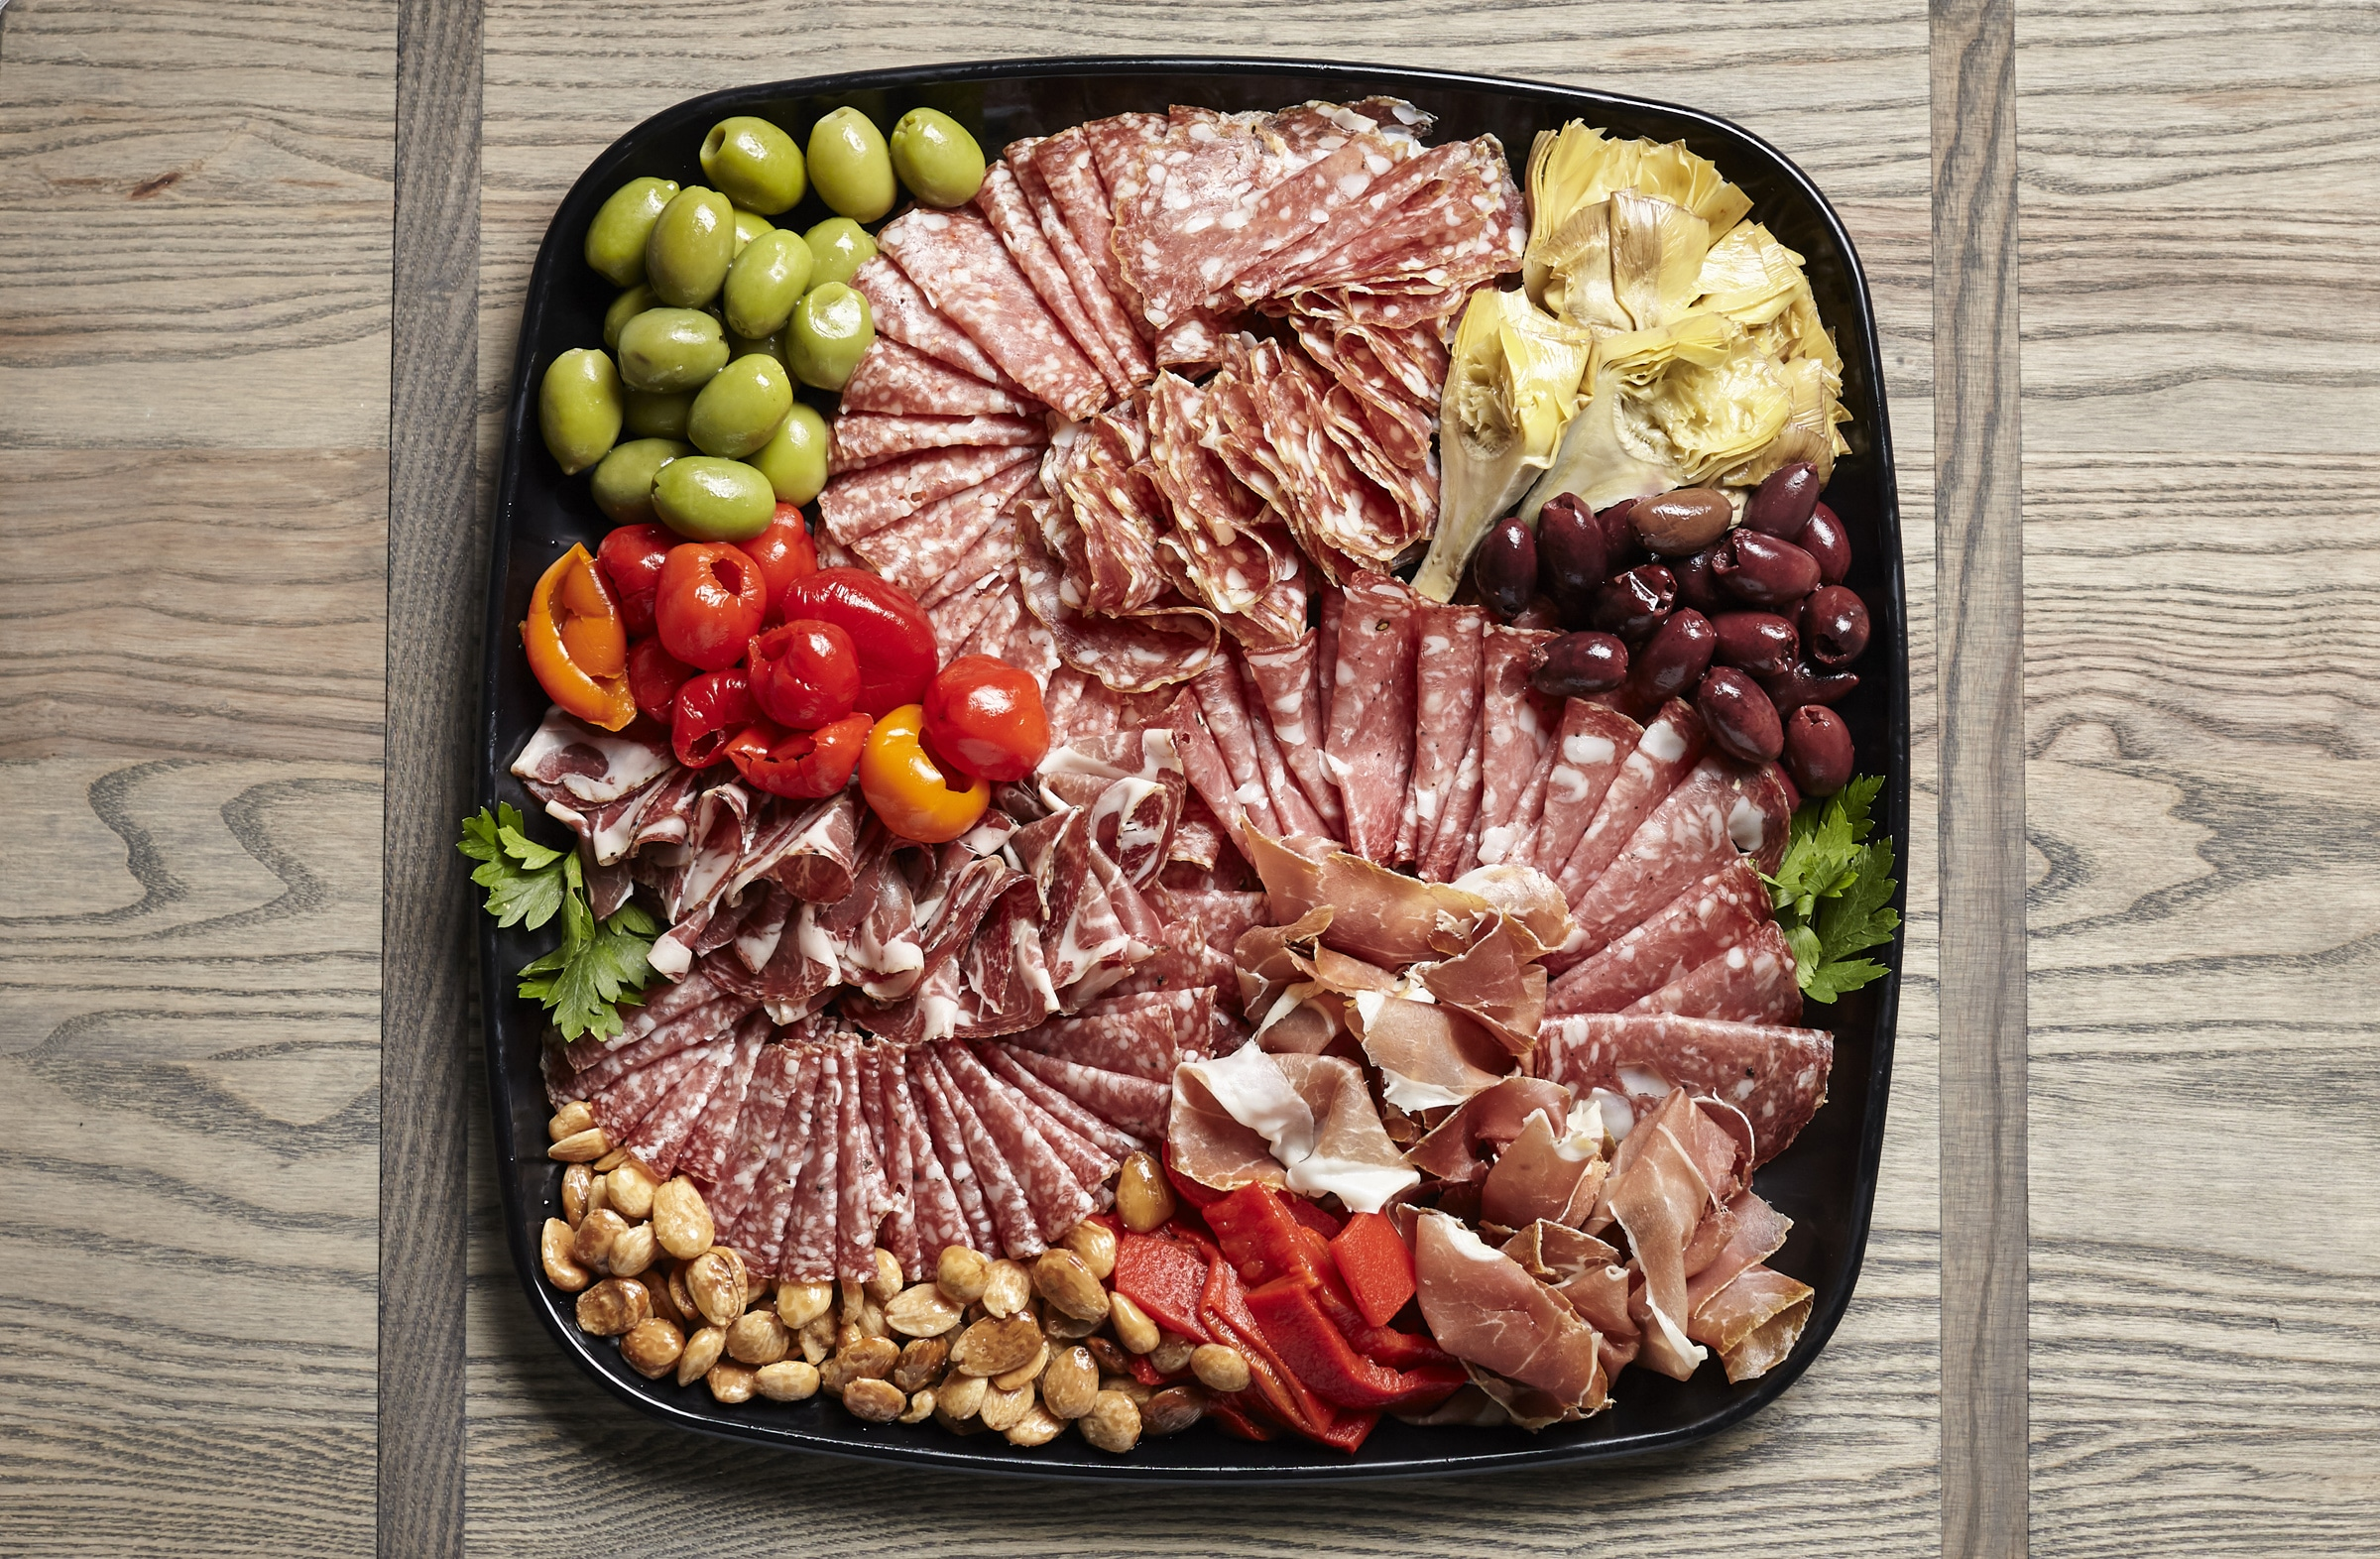 catering charcuterie tray from Zupans